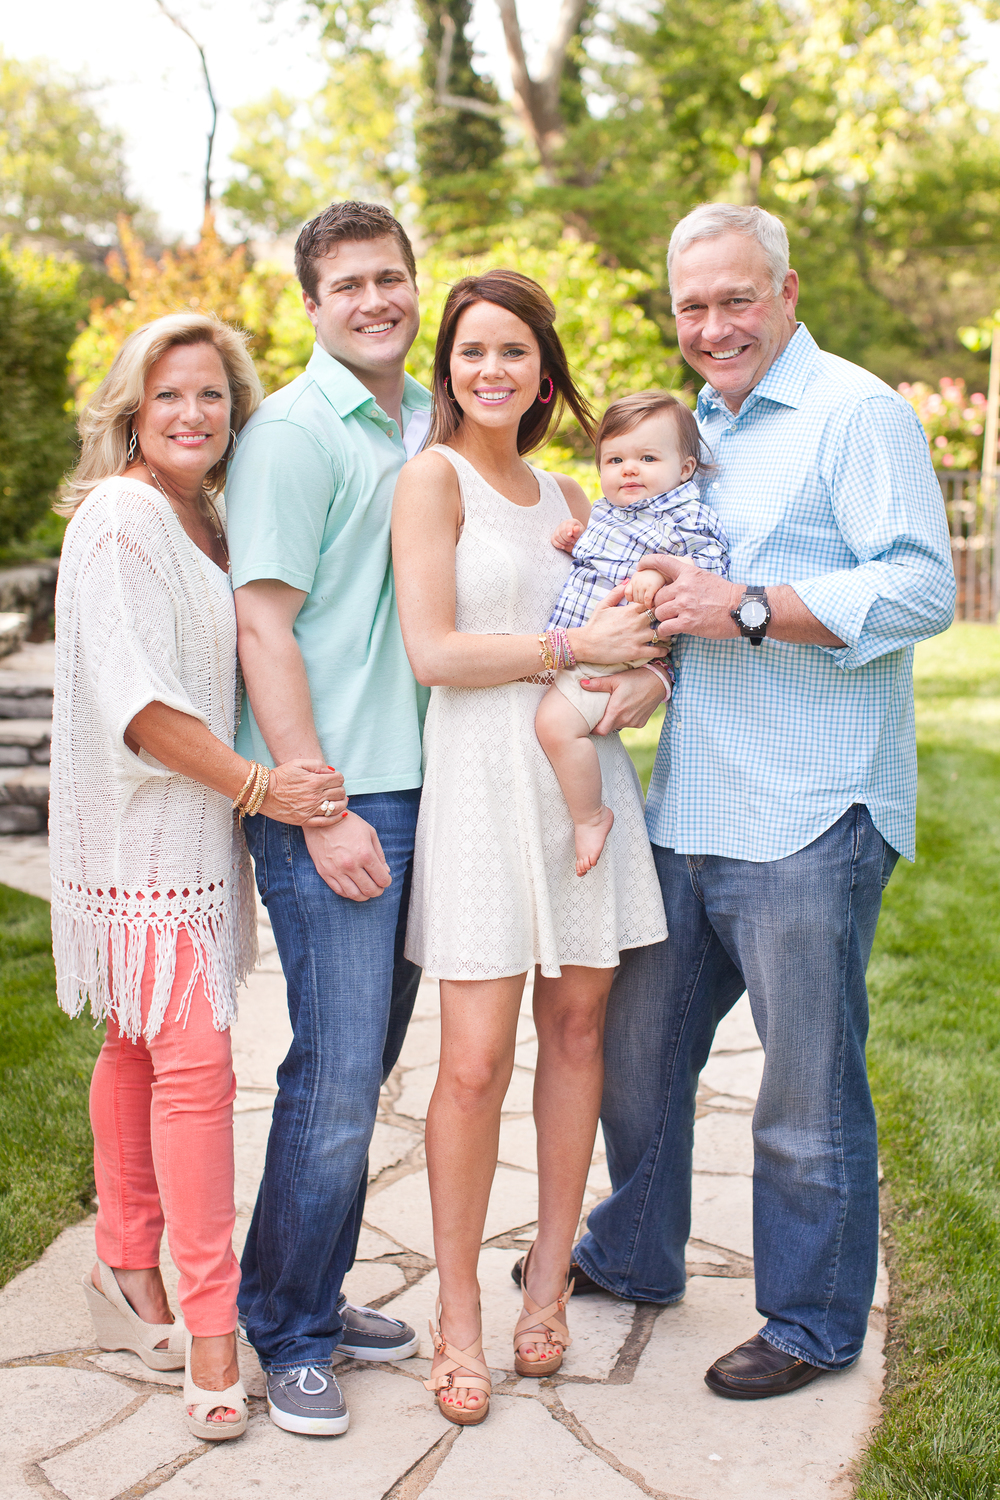 St-Louis-Family-Photographer_Ashley-Becker_0048.jpg